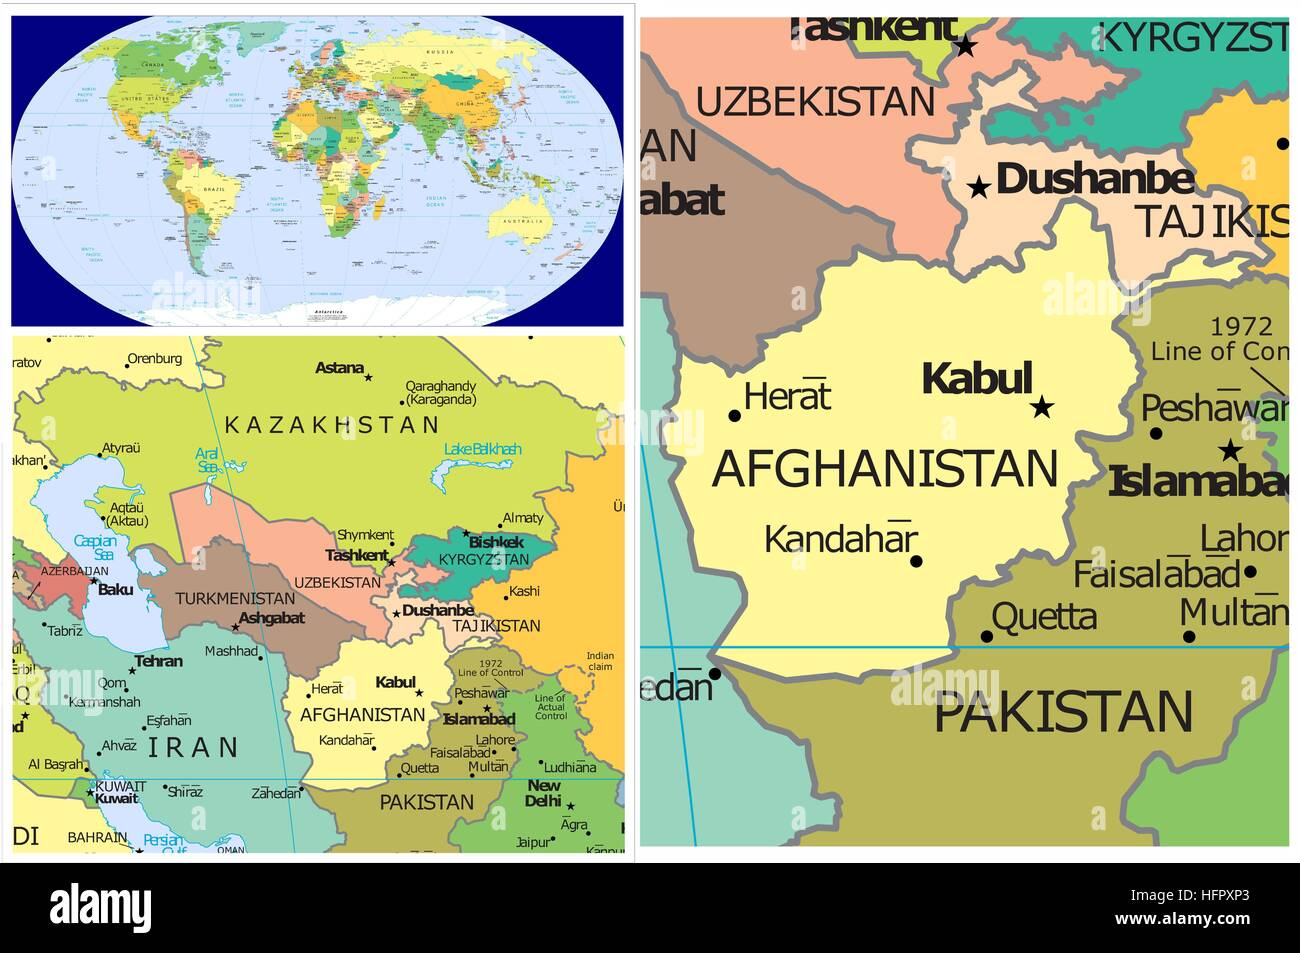 Afghanistan & Asia - Stock Image